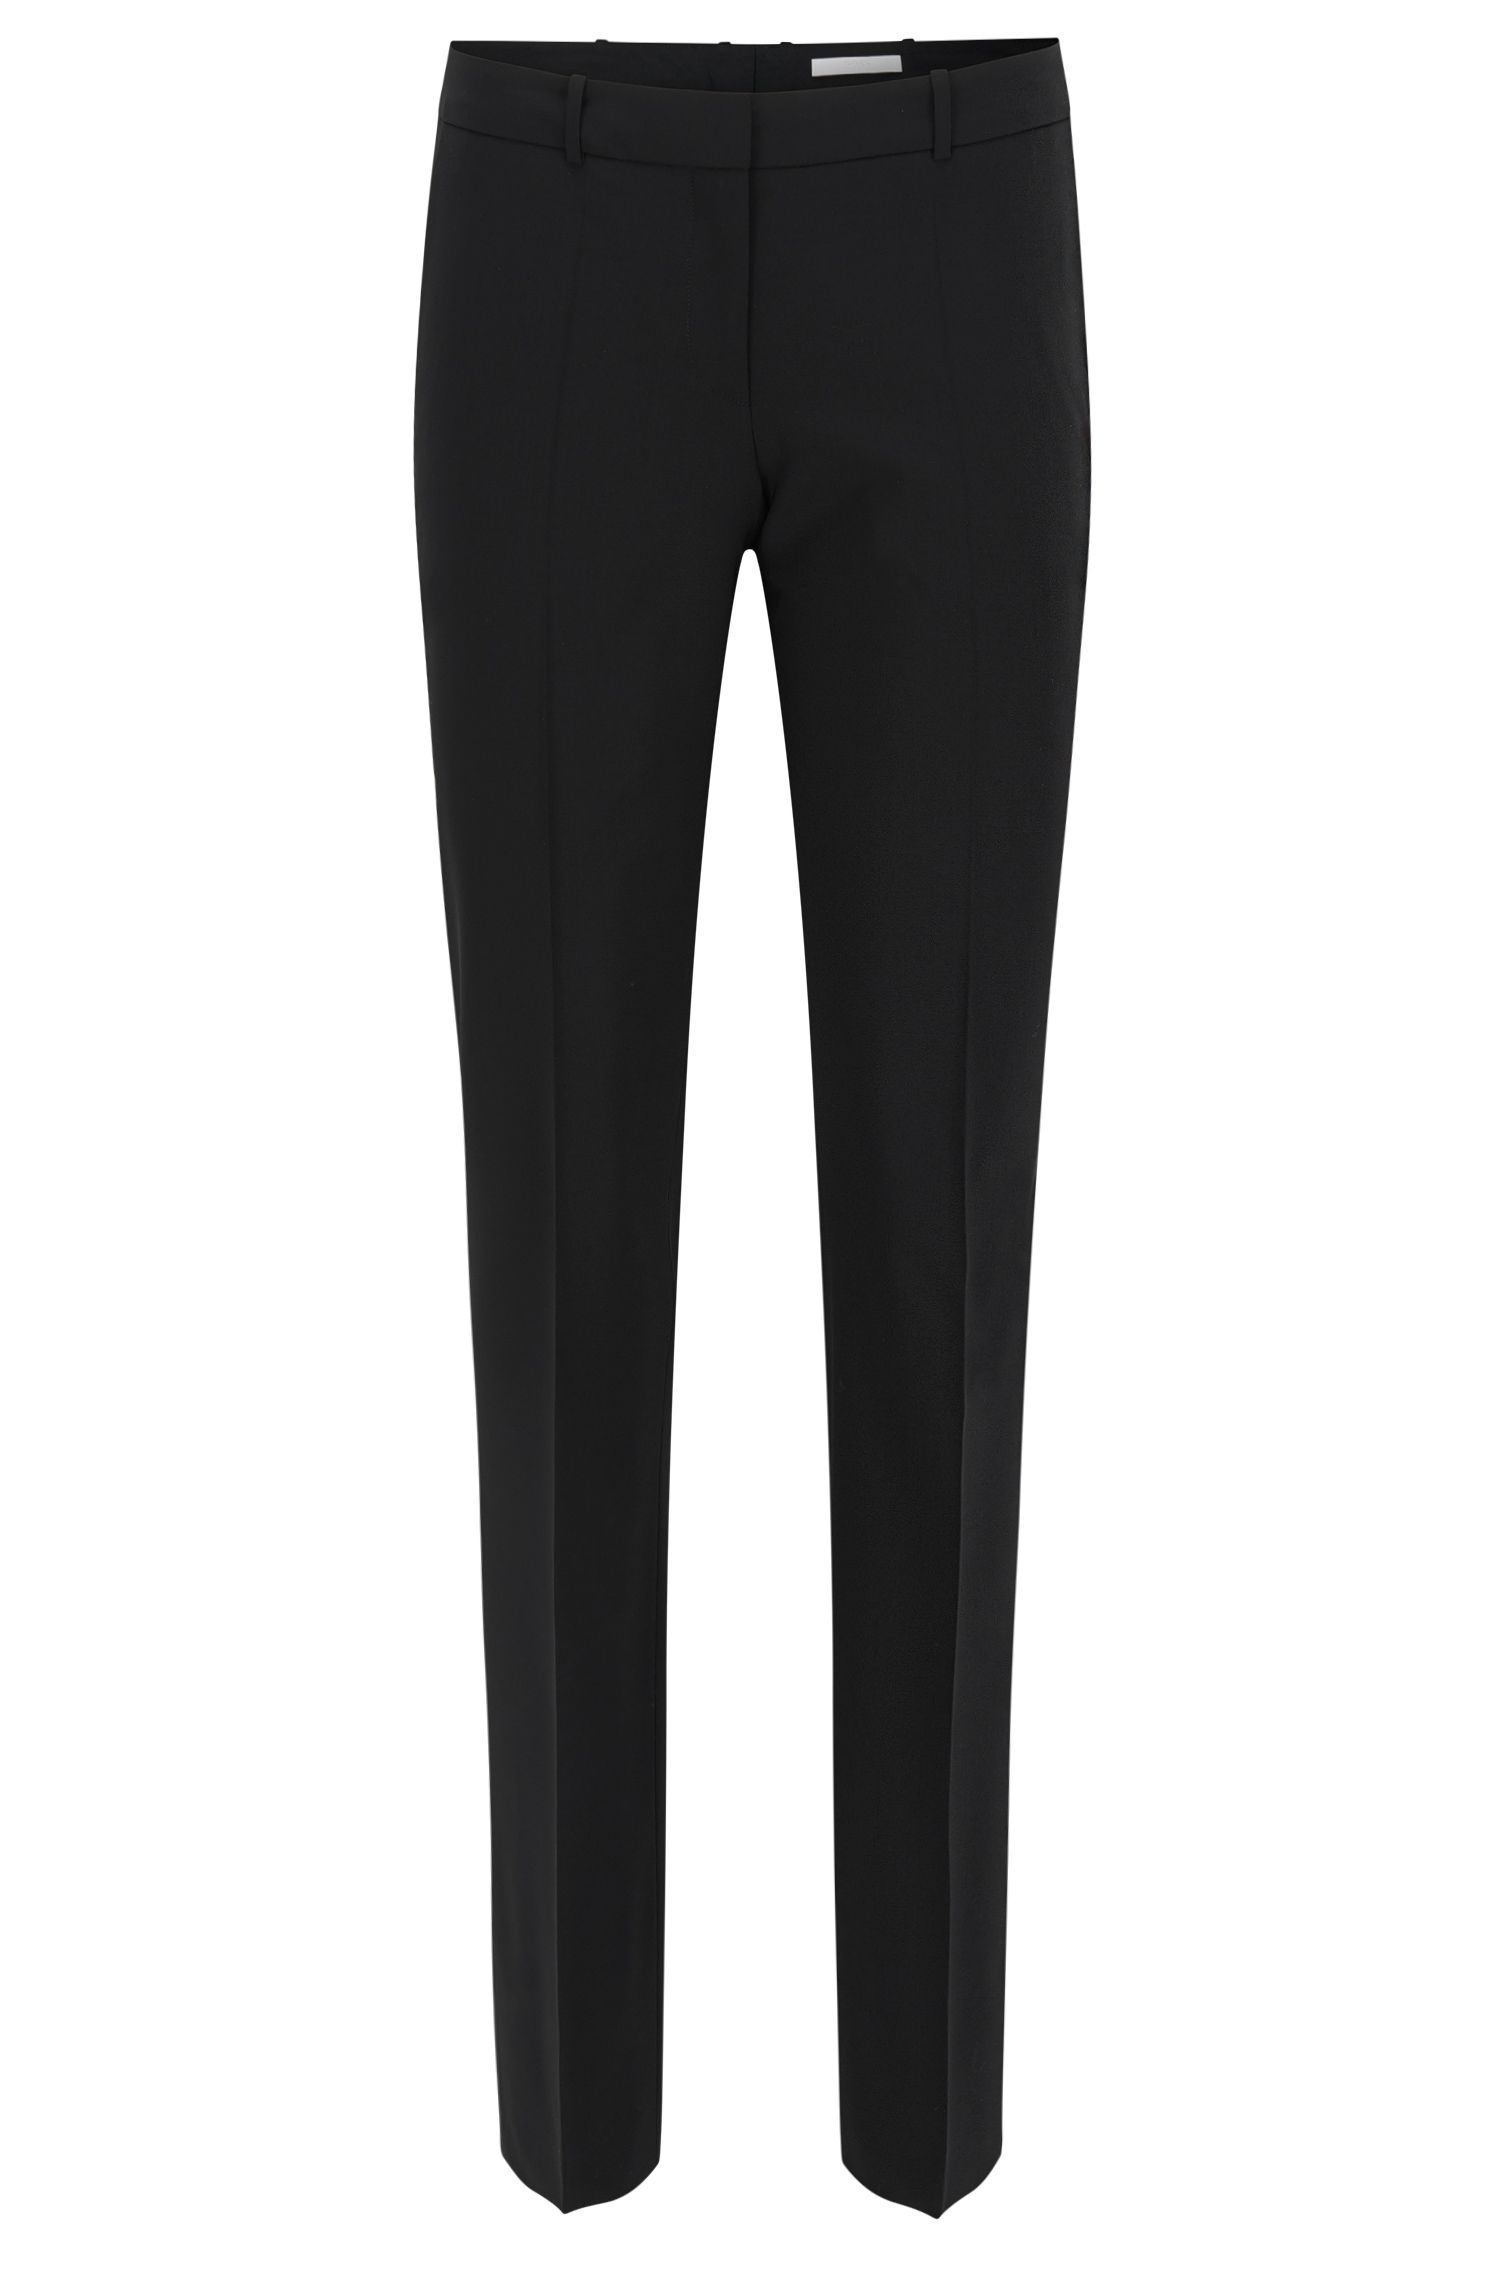 Straight-leg business trousers in stretch wool